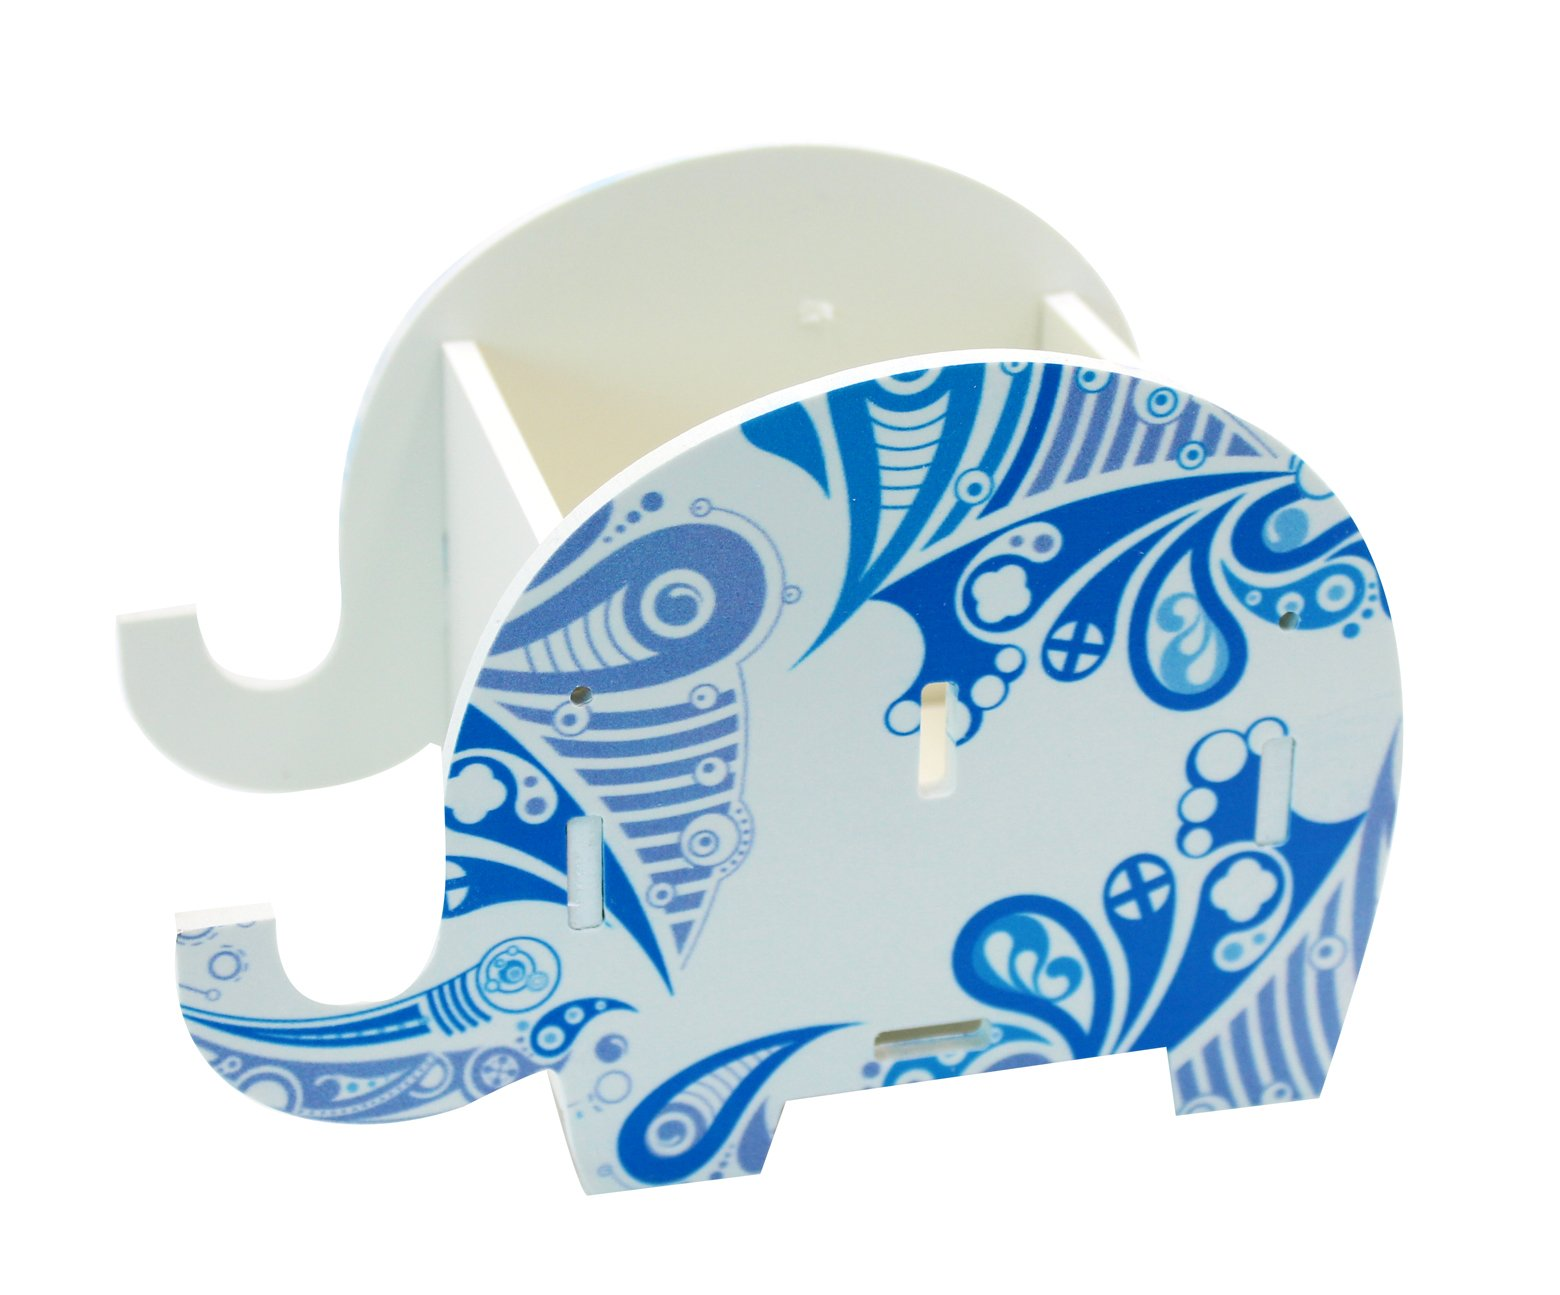 Cute Elephant Pen Pencil Comestic Stationery Holder Cell Phone Stand Multifunctional Storage Box Business Card by KINGSEVEN (Image #1)